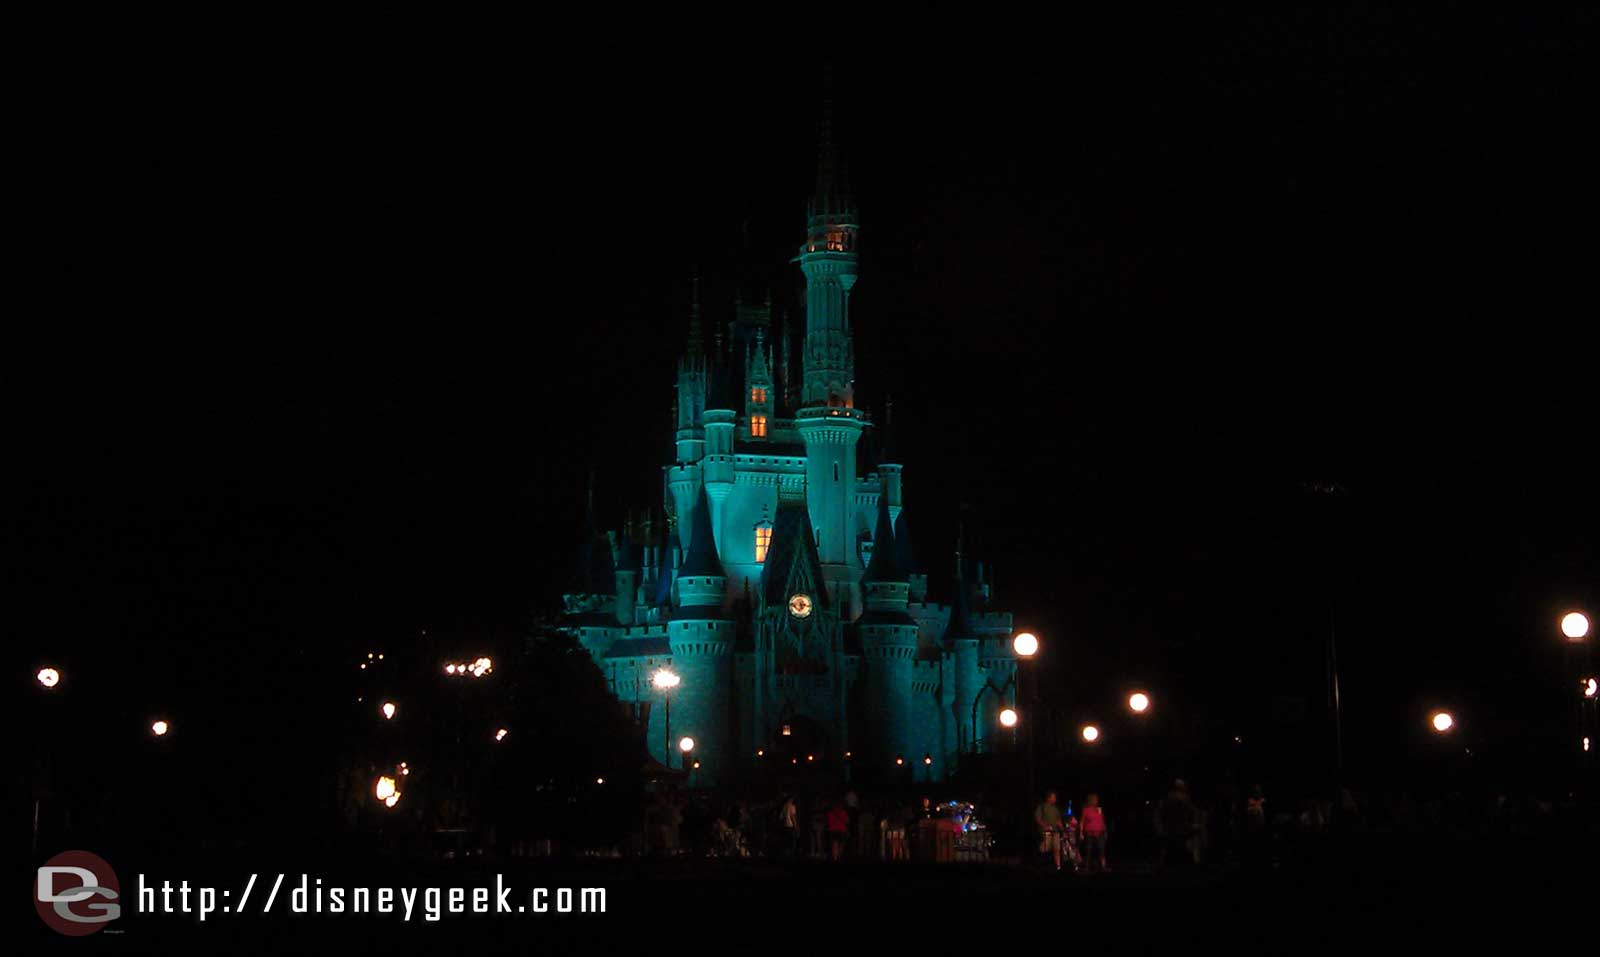 Walking by Cinderella Castle this evening